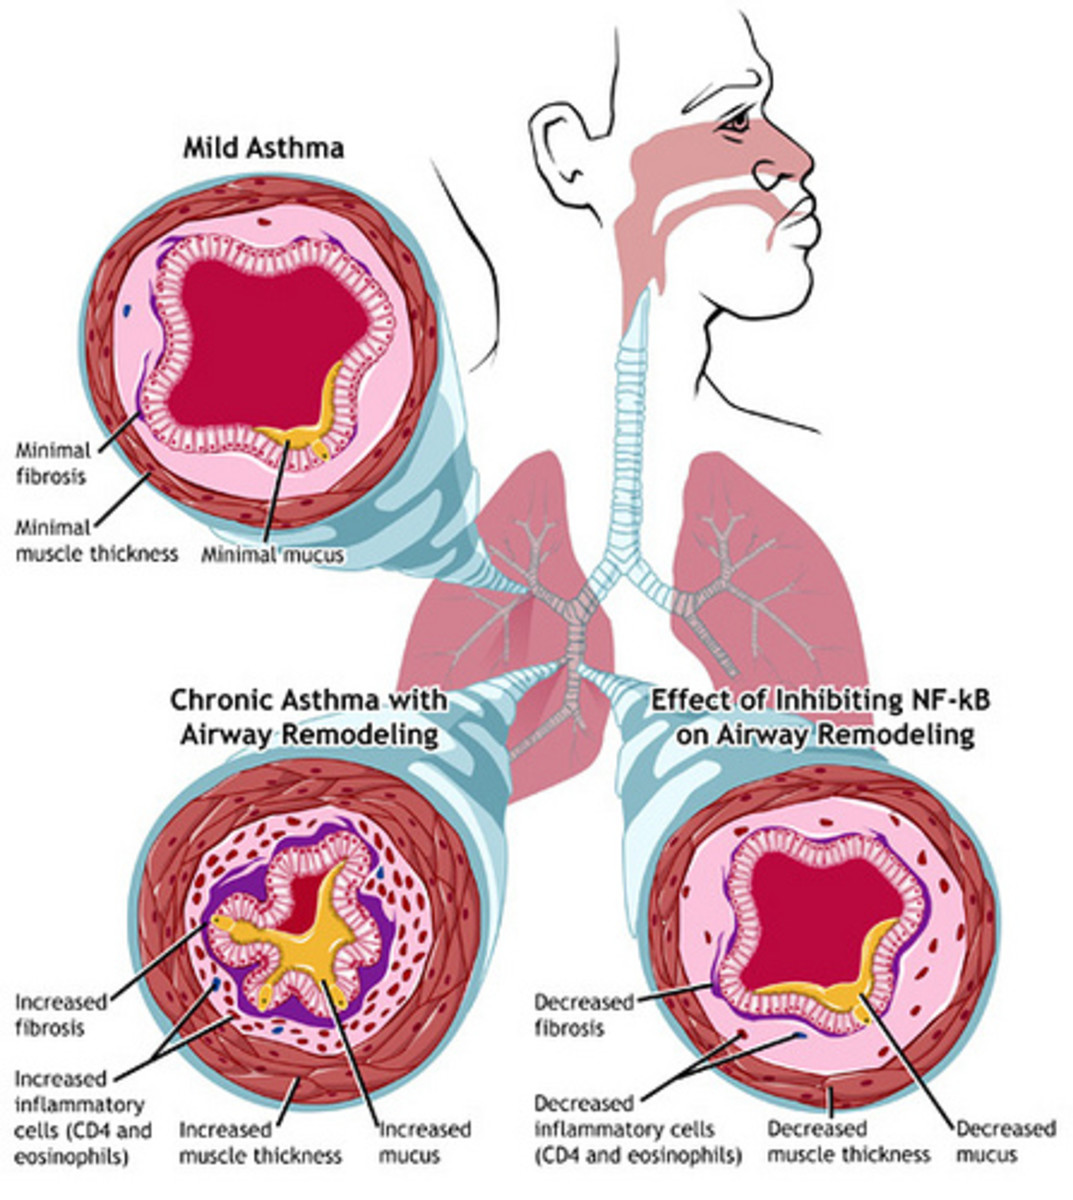 Asthma sufferers have trouble breathing because of the narrowing of the airways in their lungs, an example of which is shown in the upper left. In chronic asthma (lower left), repeated cycles of inflammation, damage, and repair lead to airway remodel